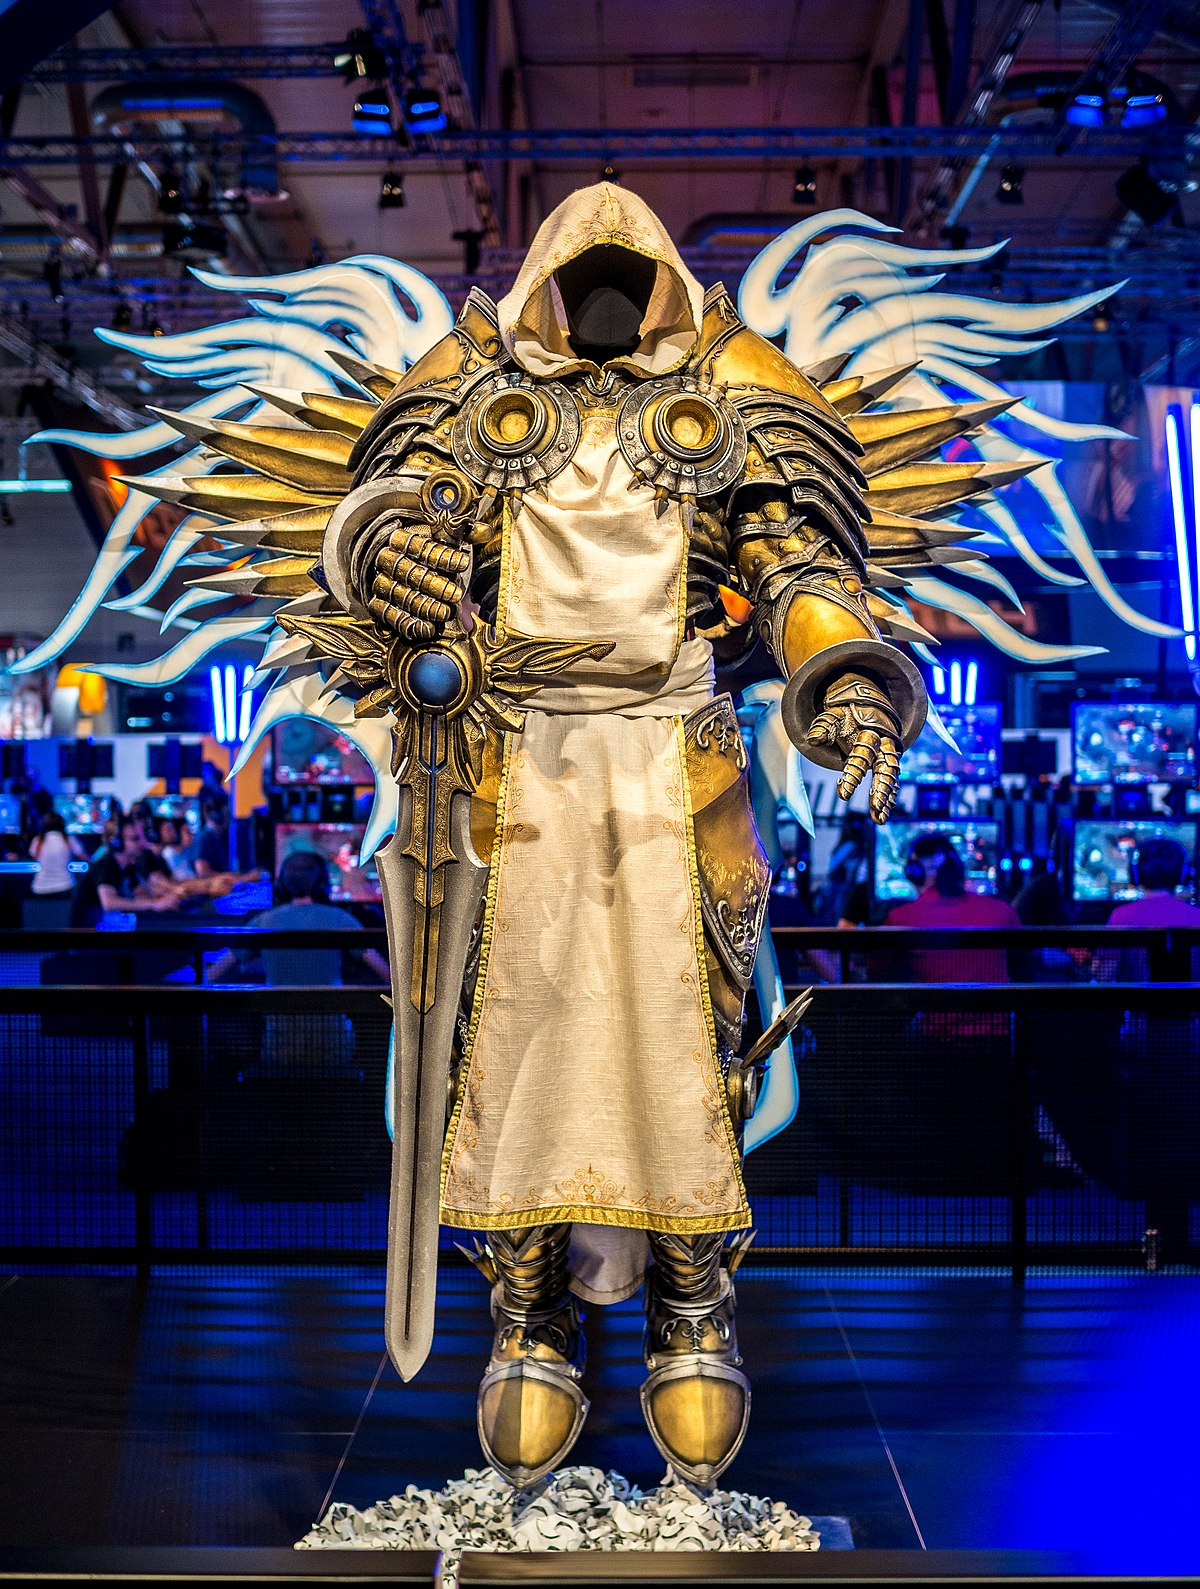 File Tyrael From Heroes Of The Storm At Gamescom 2015 19808209243 Jpg Wikimedia Commons Among the angels it is the archangel of justice tyrael who is humanity's greatest defender. heroes of the storm at gamescom 2015